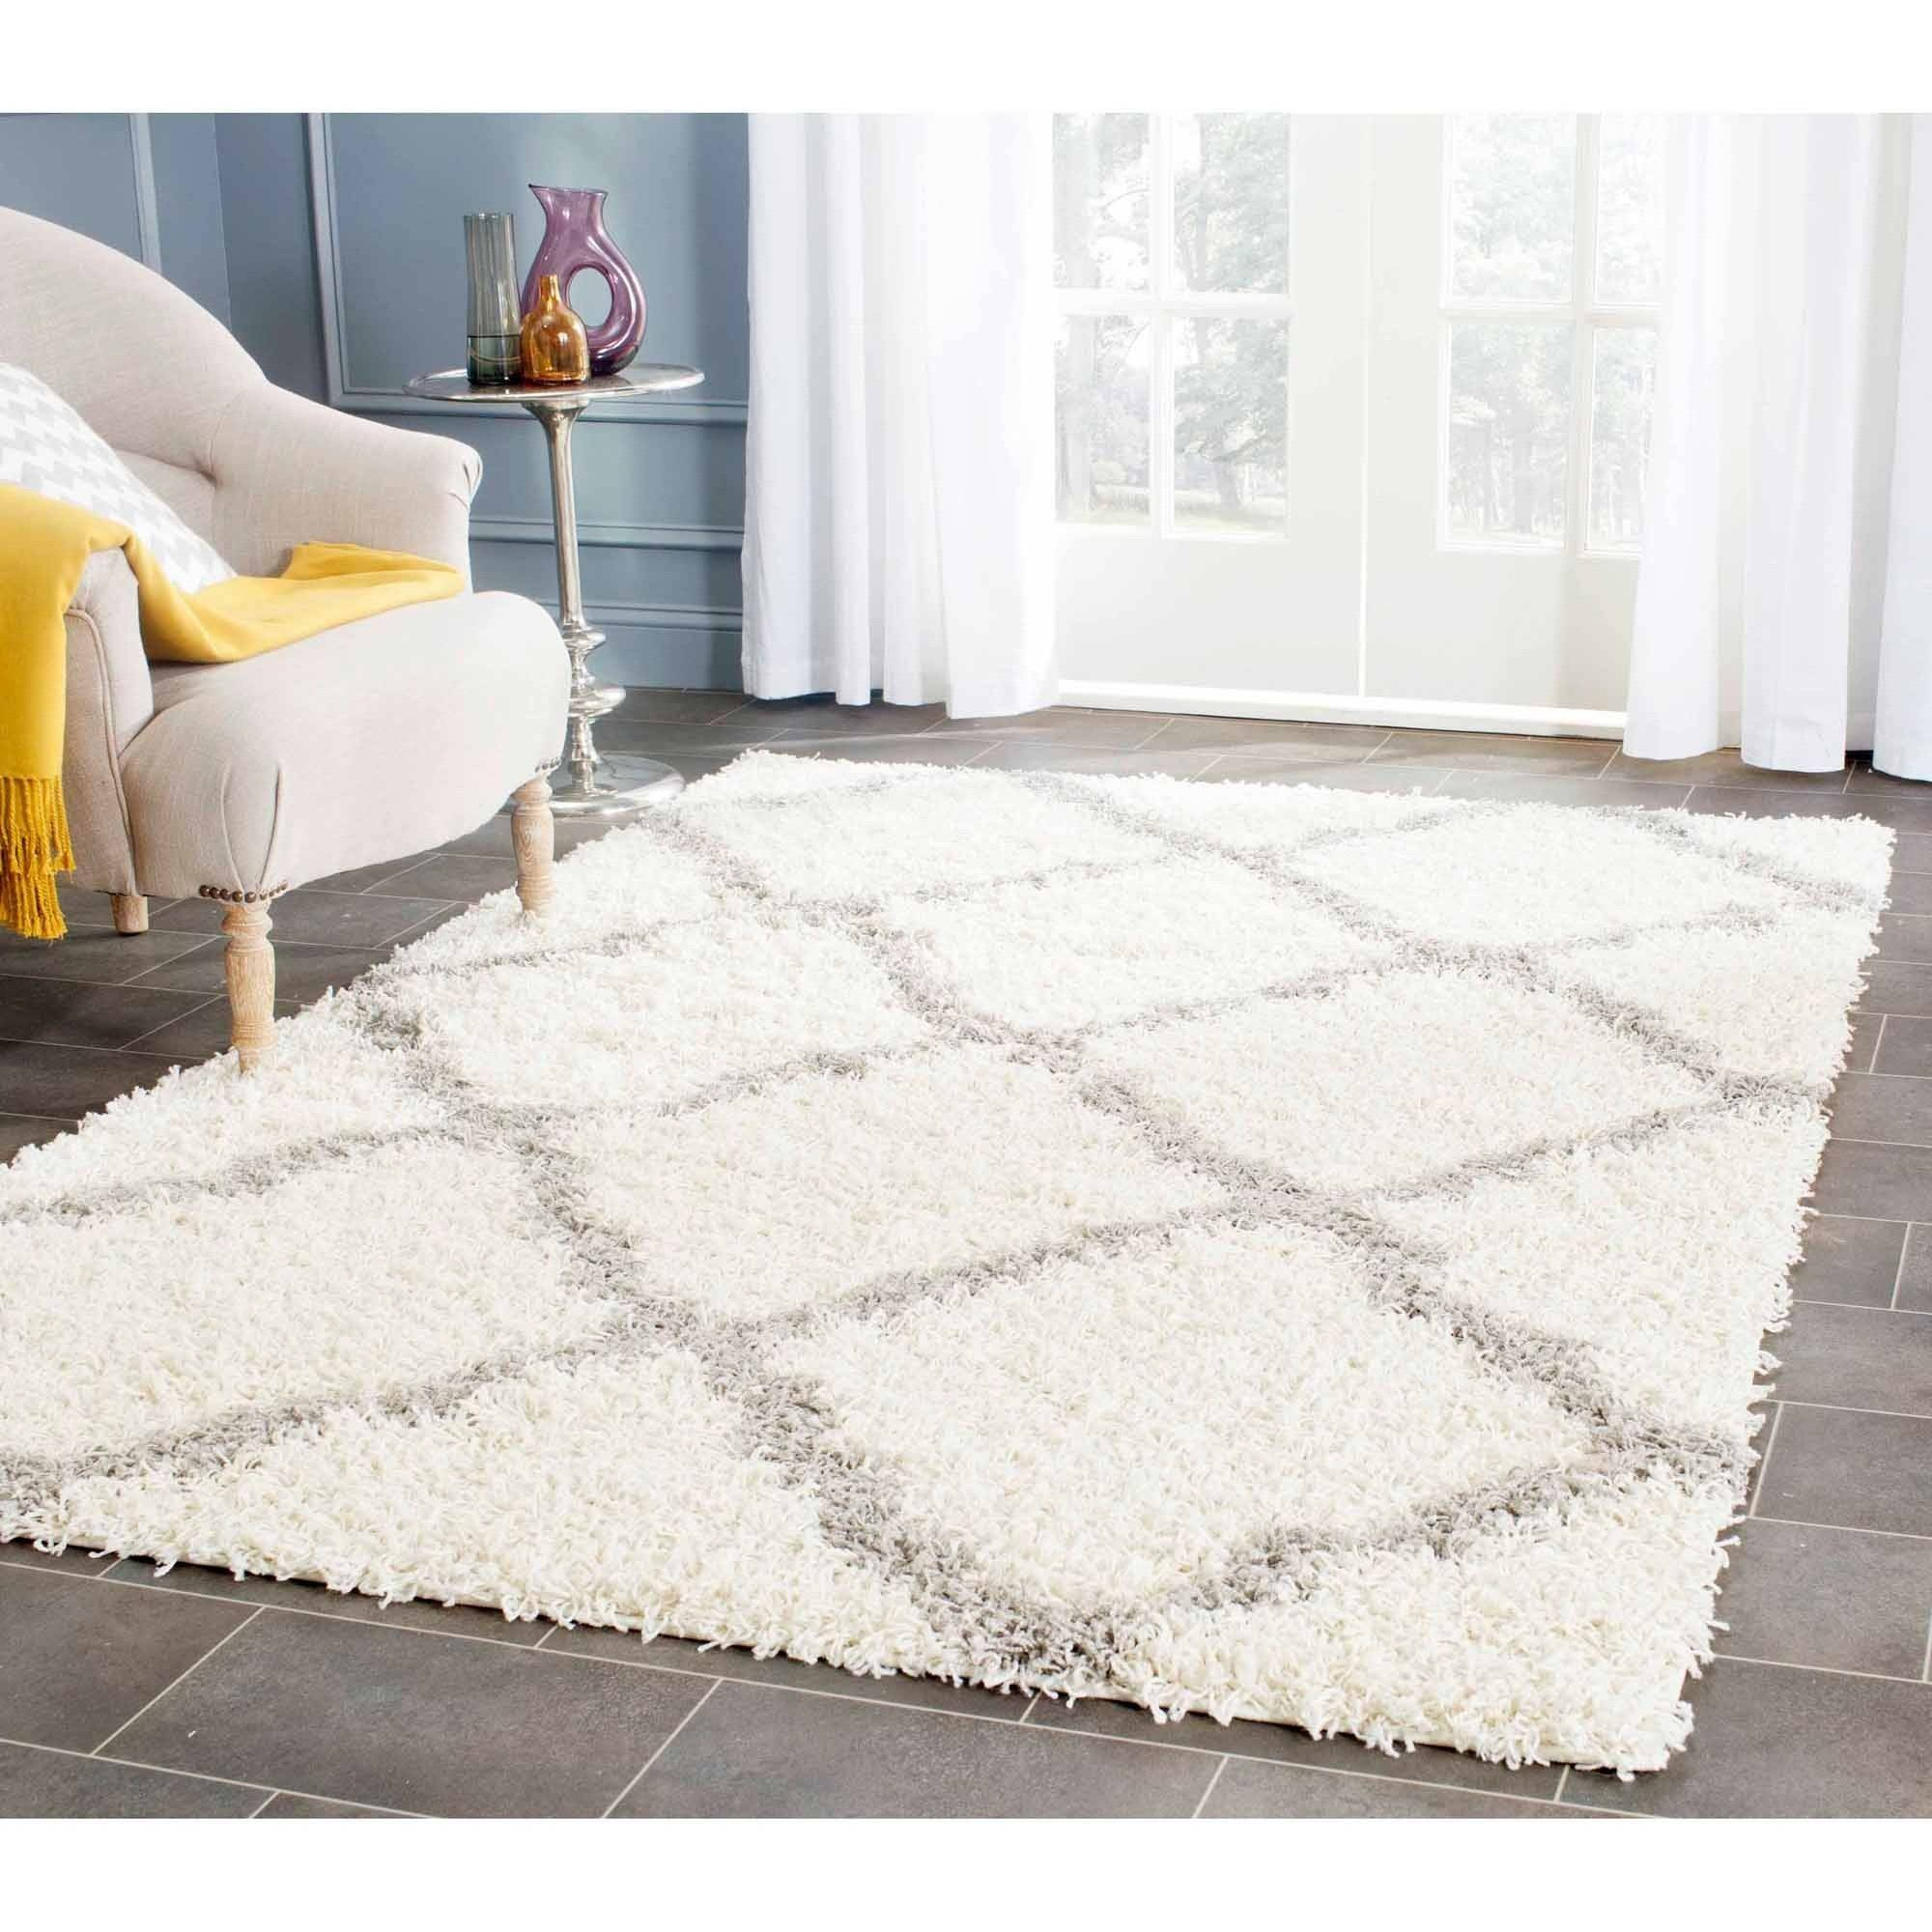 improvement luxury grey white area home photos rug rugs of flooring shag best